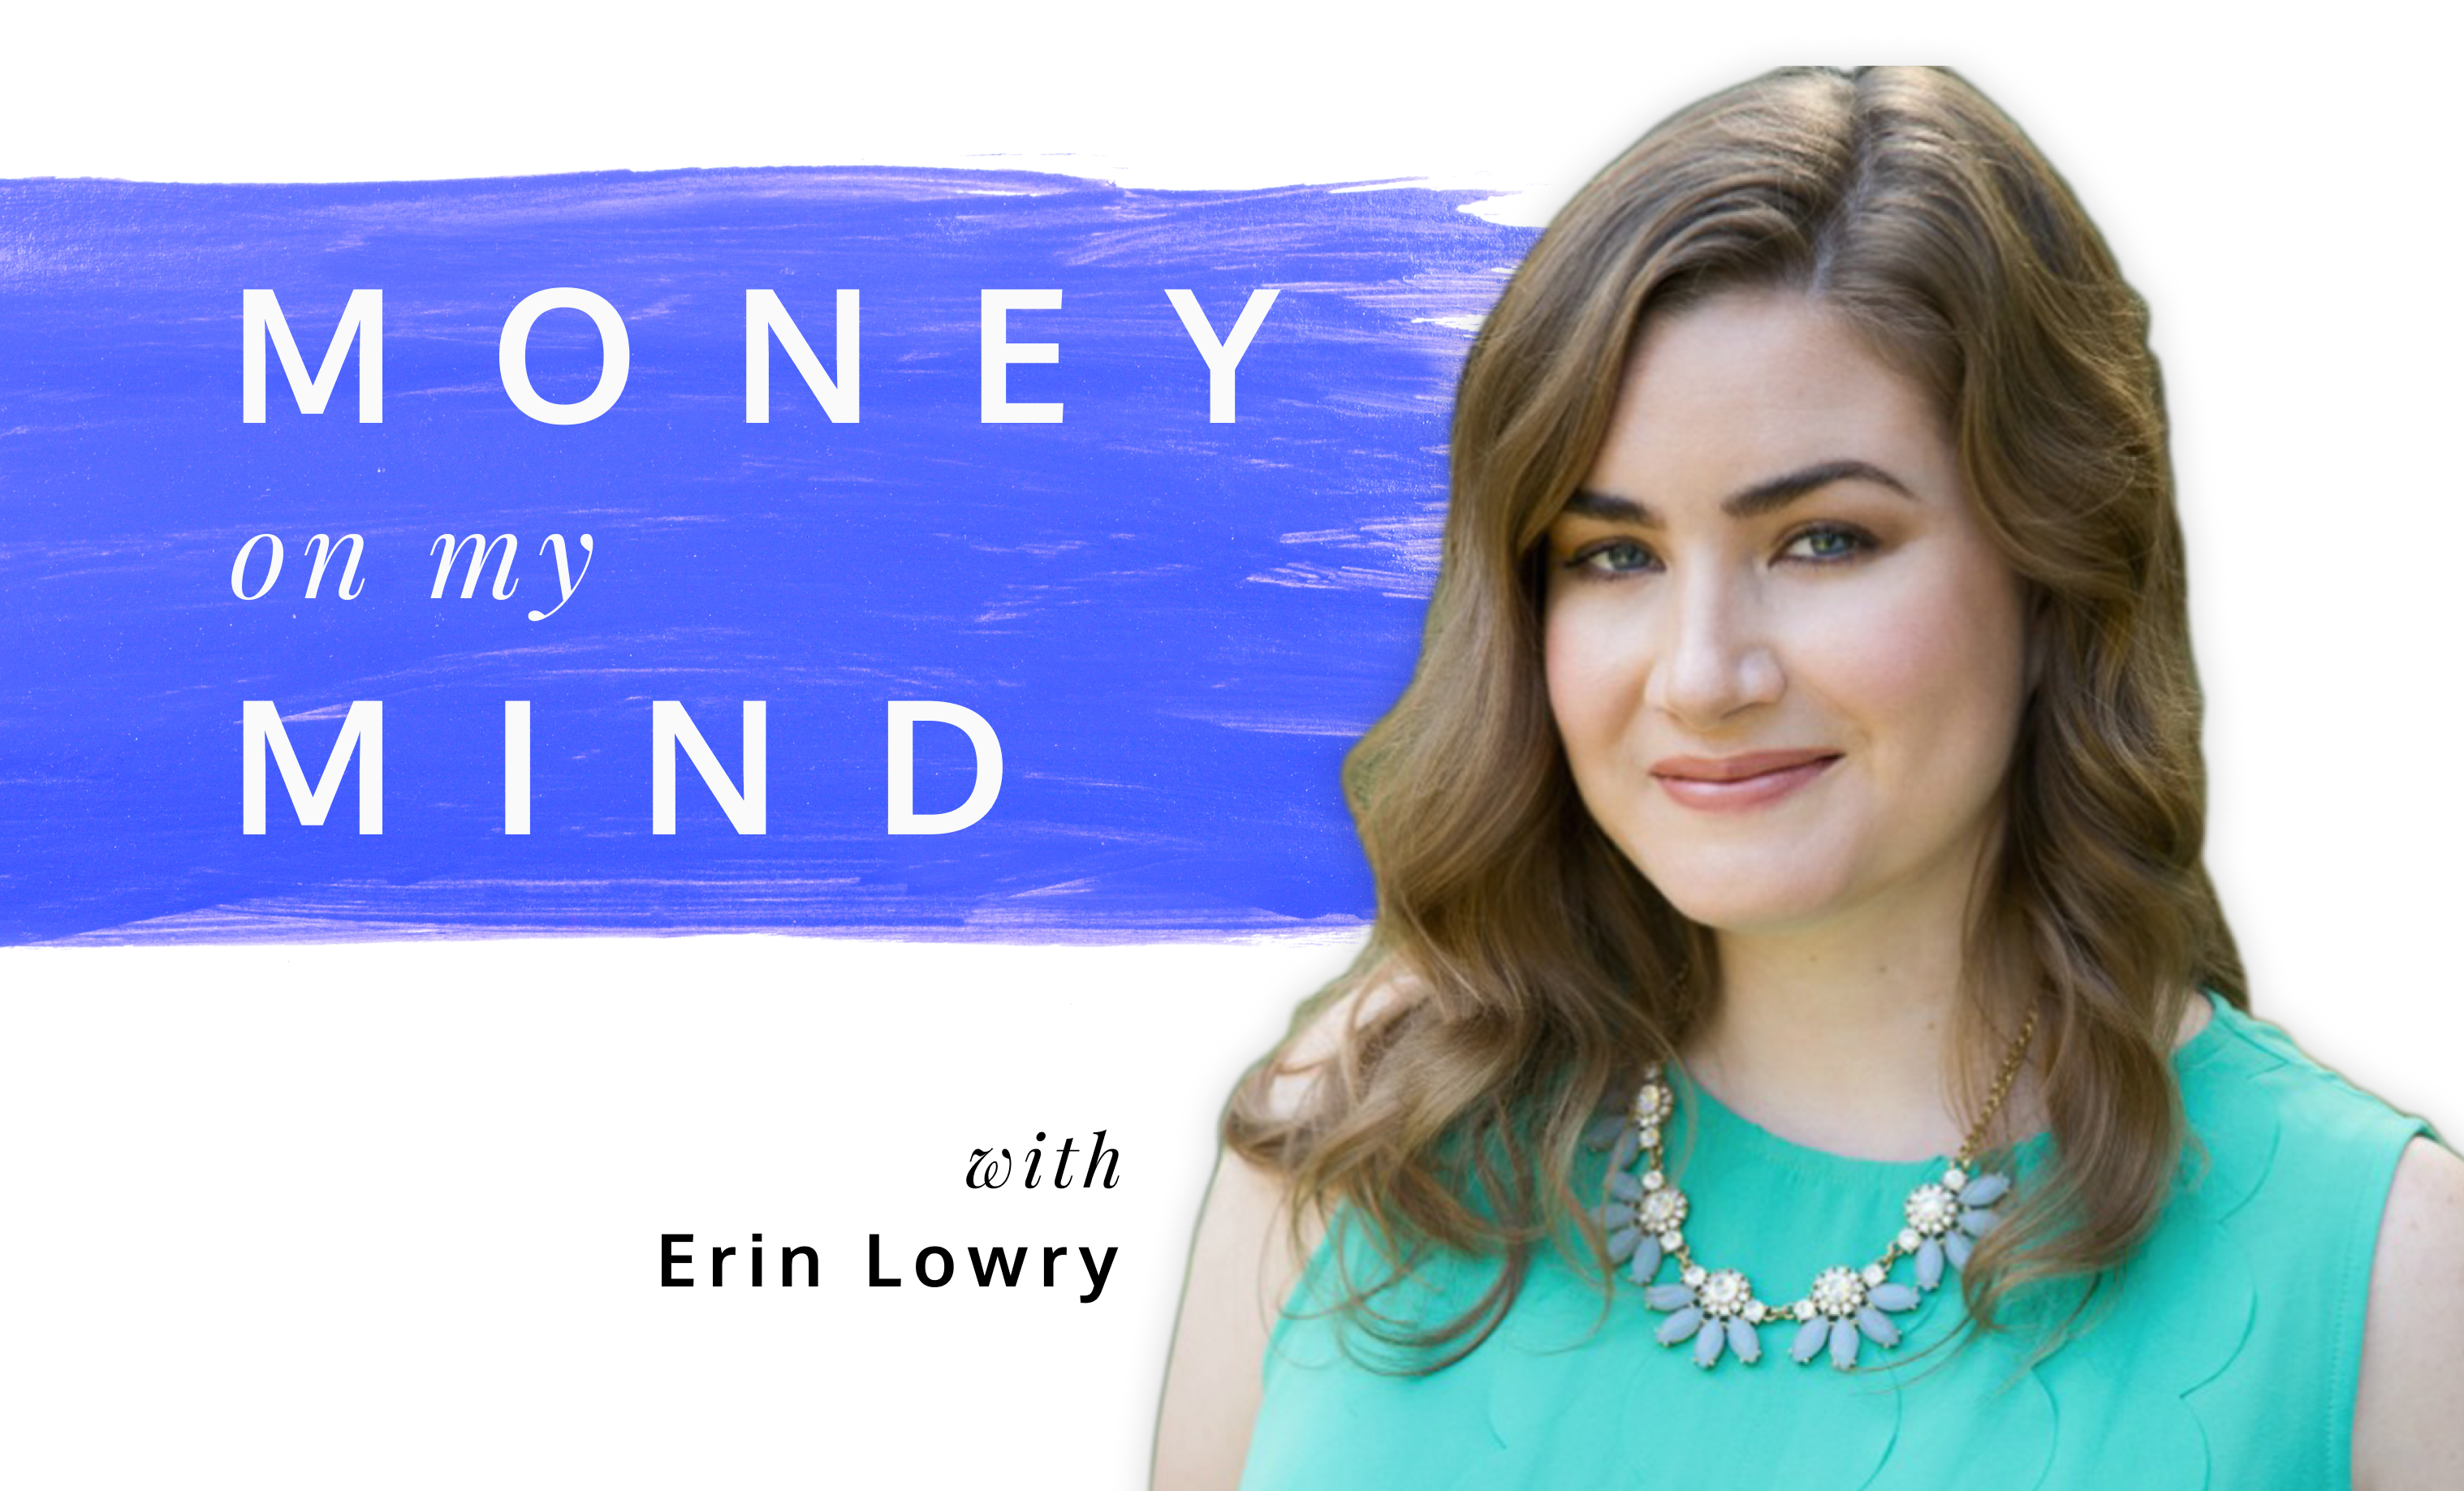 Thrive Global/Erin Lowry